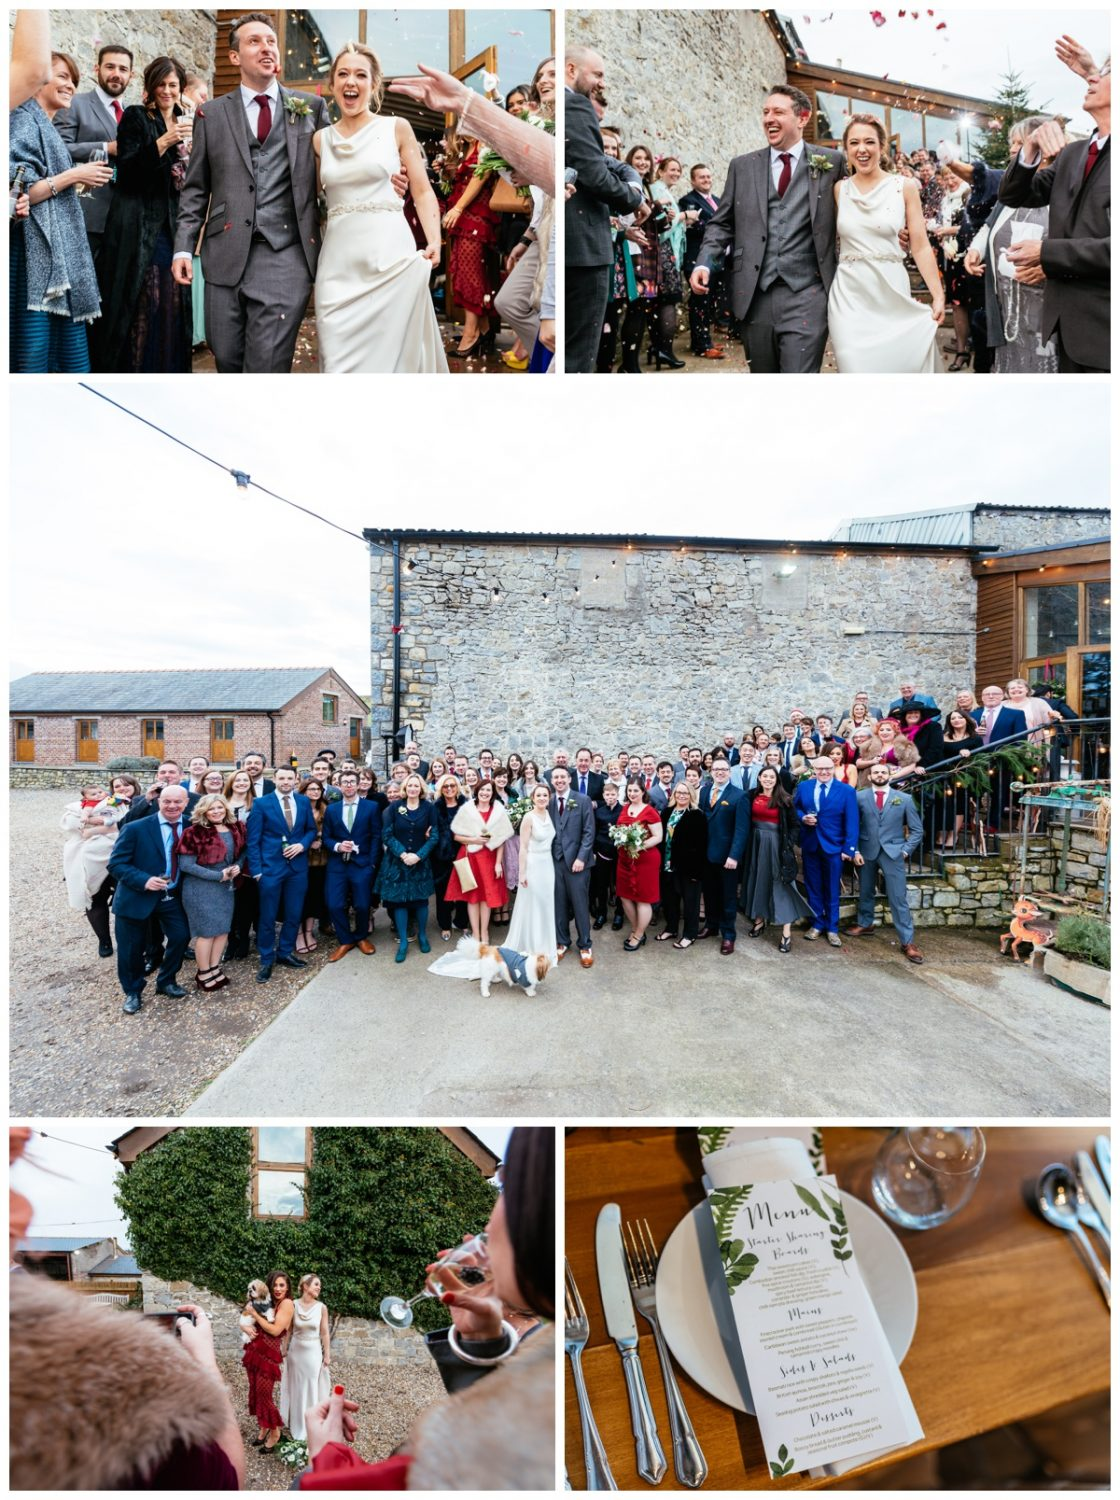 Carly Huw Rosedew Farm South Wales Wedding Photographer -OM- 018 - 35 mm 1-125 sec at f - 5.6 ISO 400_Spain Abroad Destination Wedding Photographers.jpg